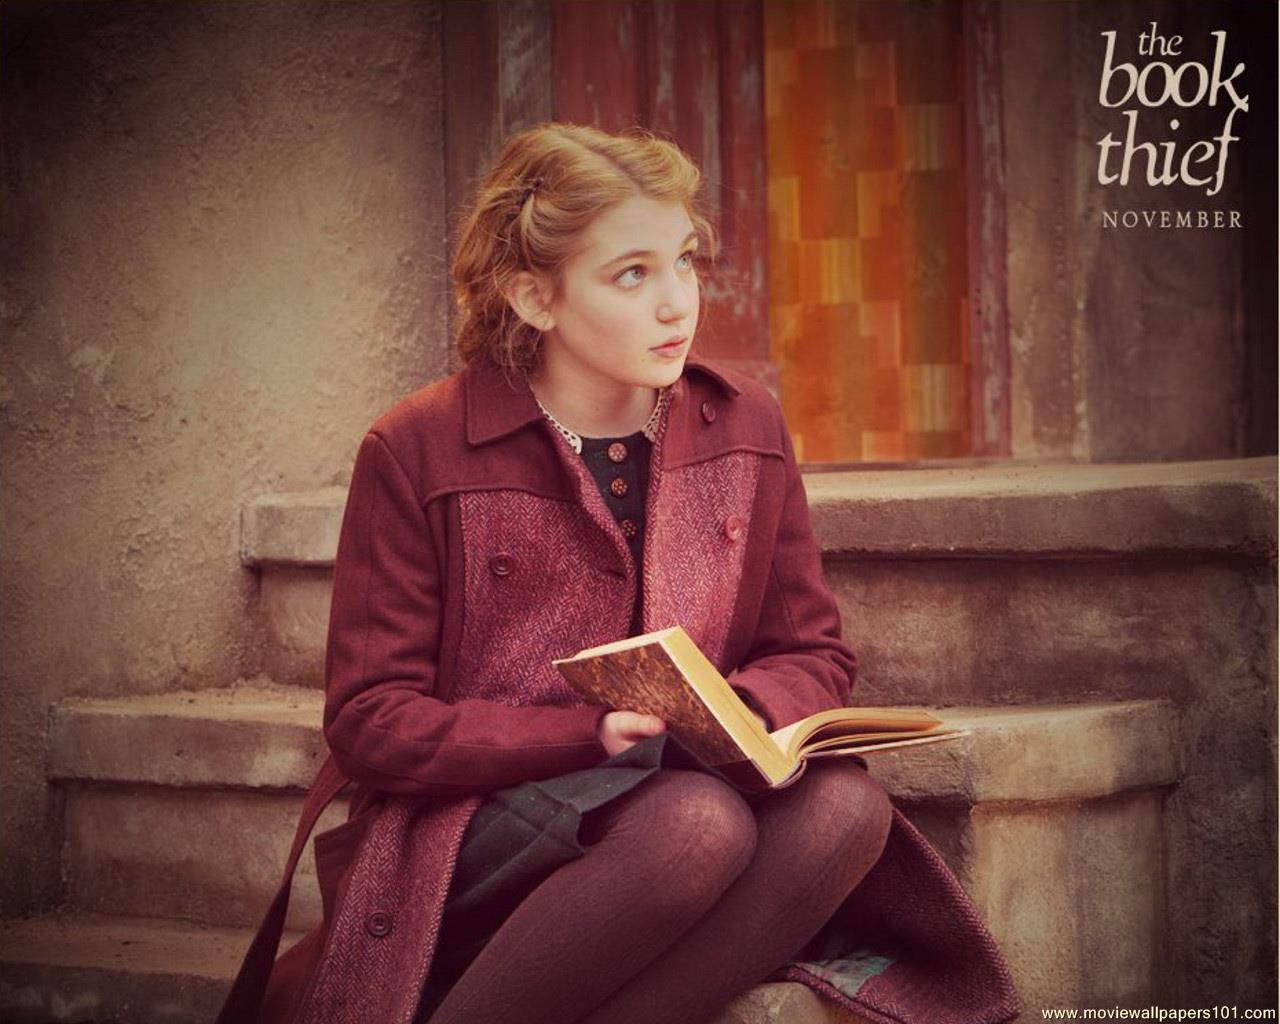 the book theif Summary and reviews of the book thief by markus zusak, plus links to a book excerpt from the book thief and author biography of markus zusak.